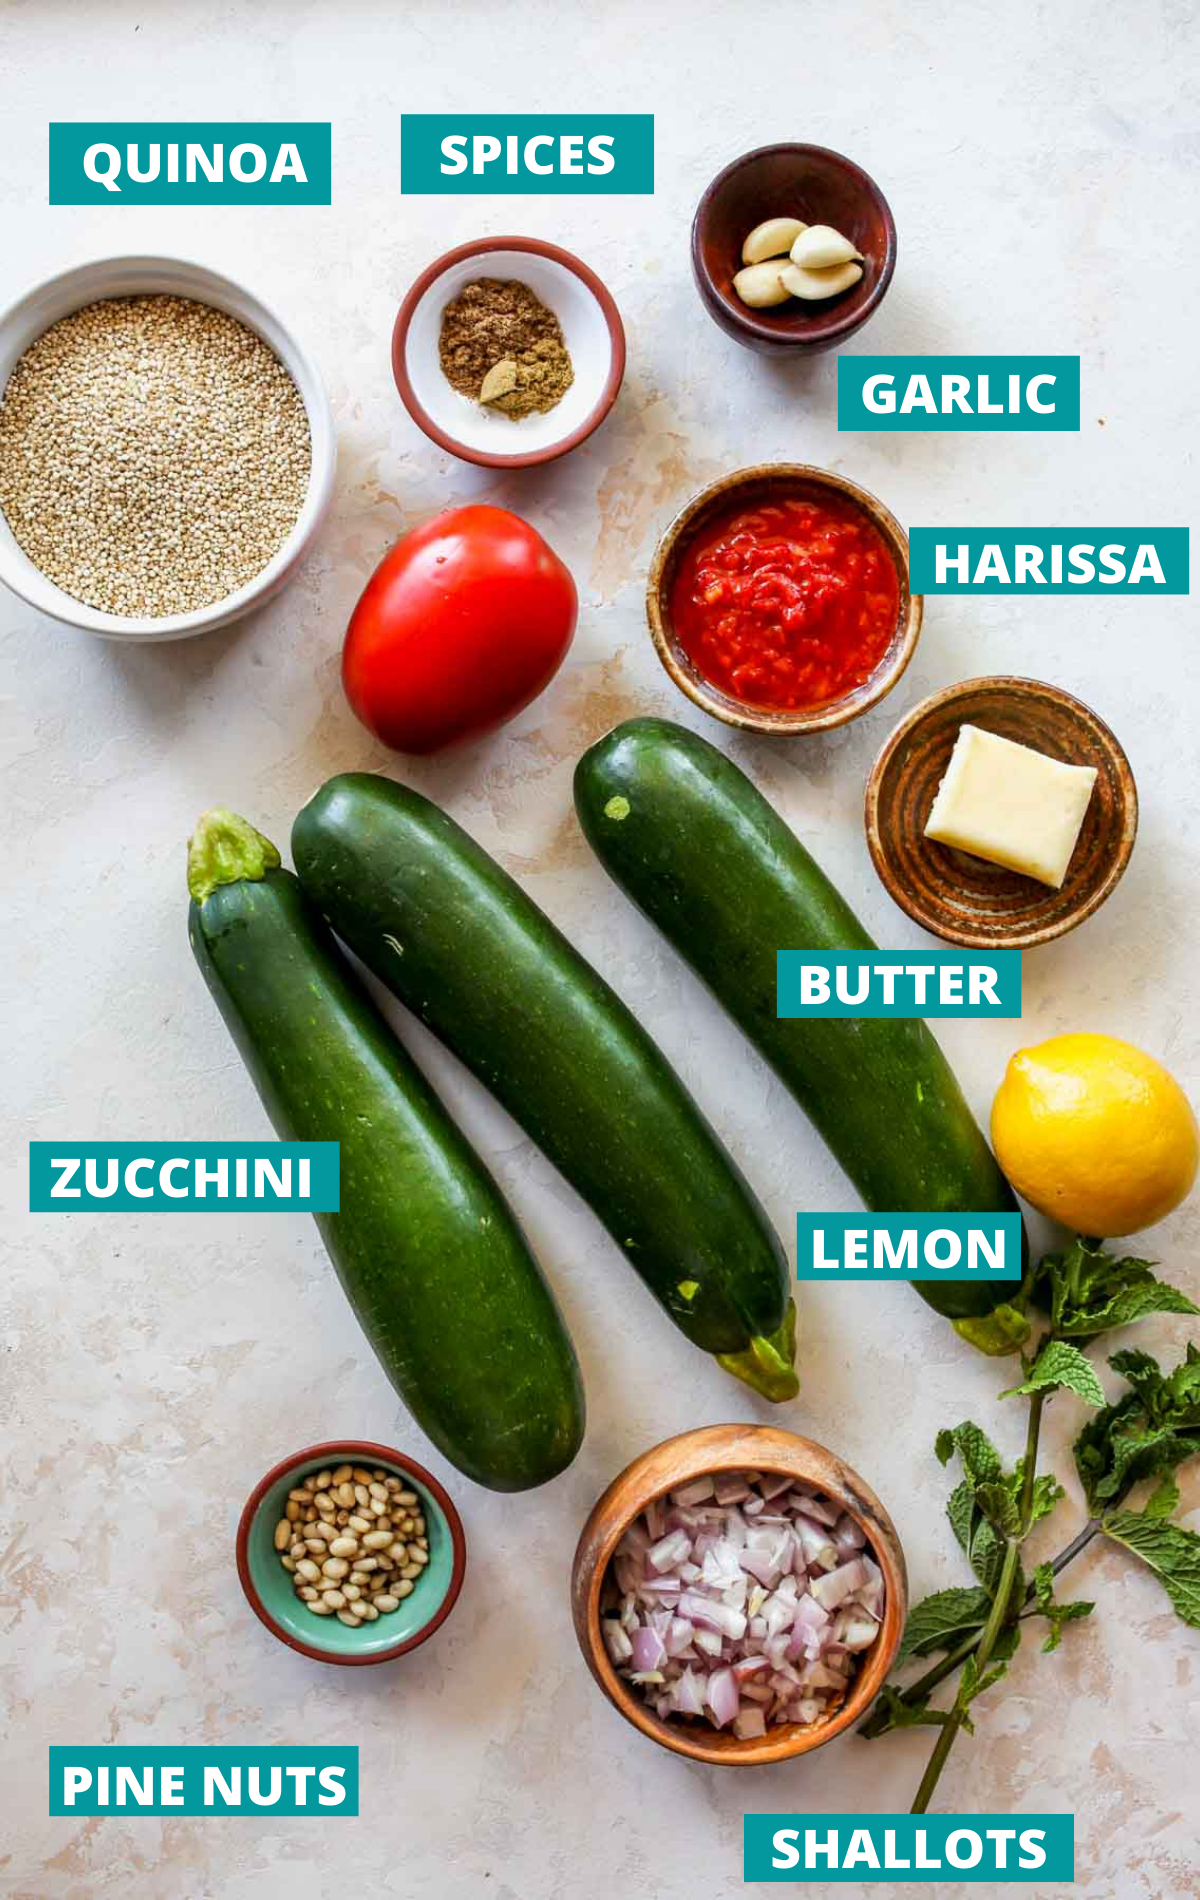 Stuffed zucchini ingredients in separate bowls with blue labels